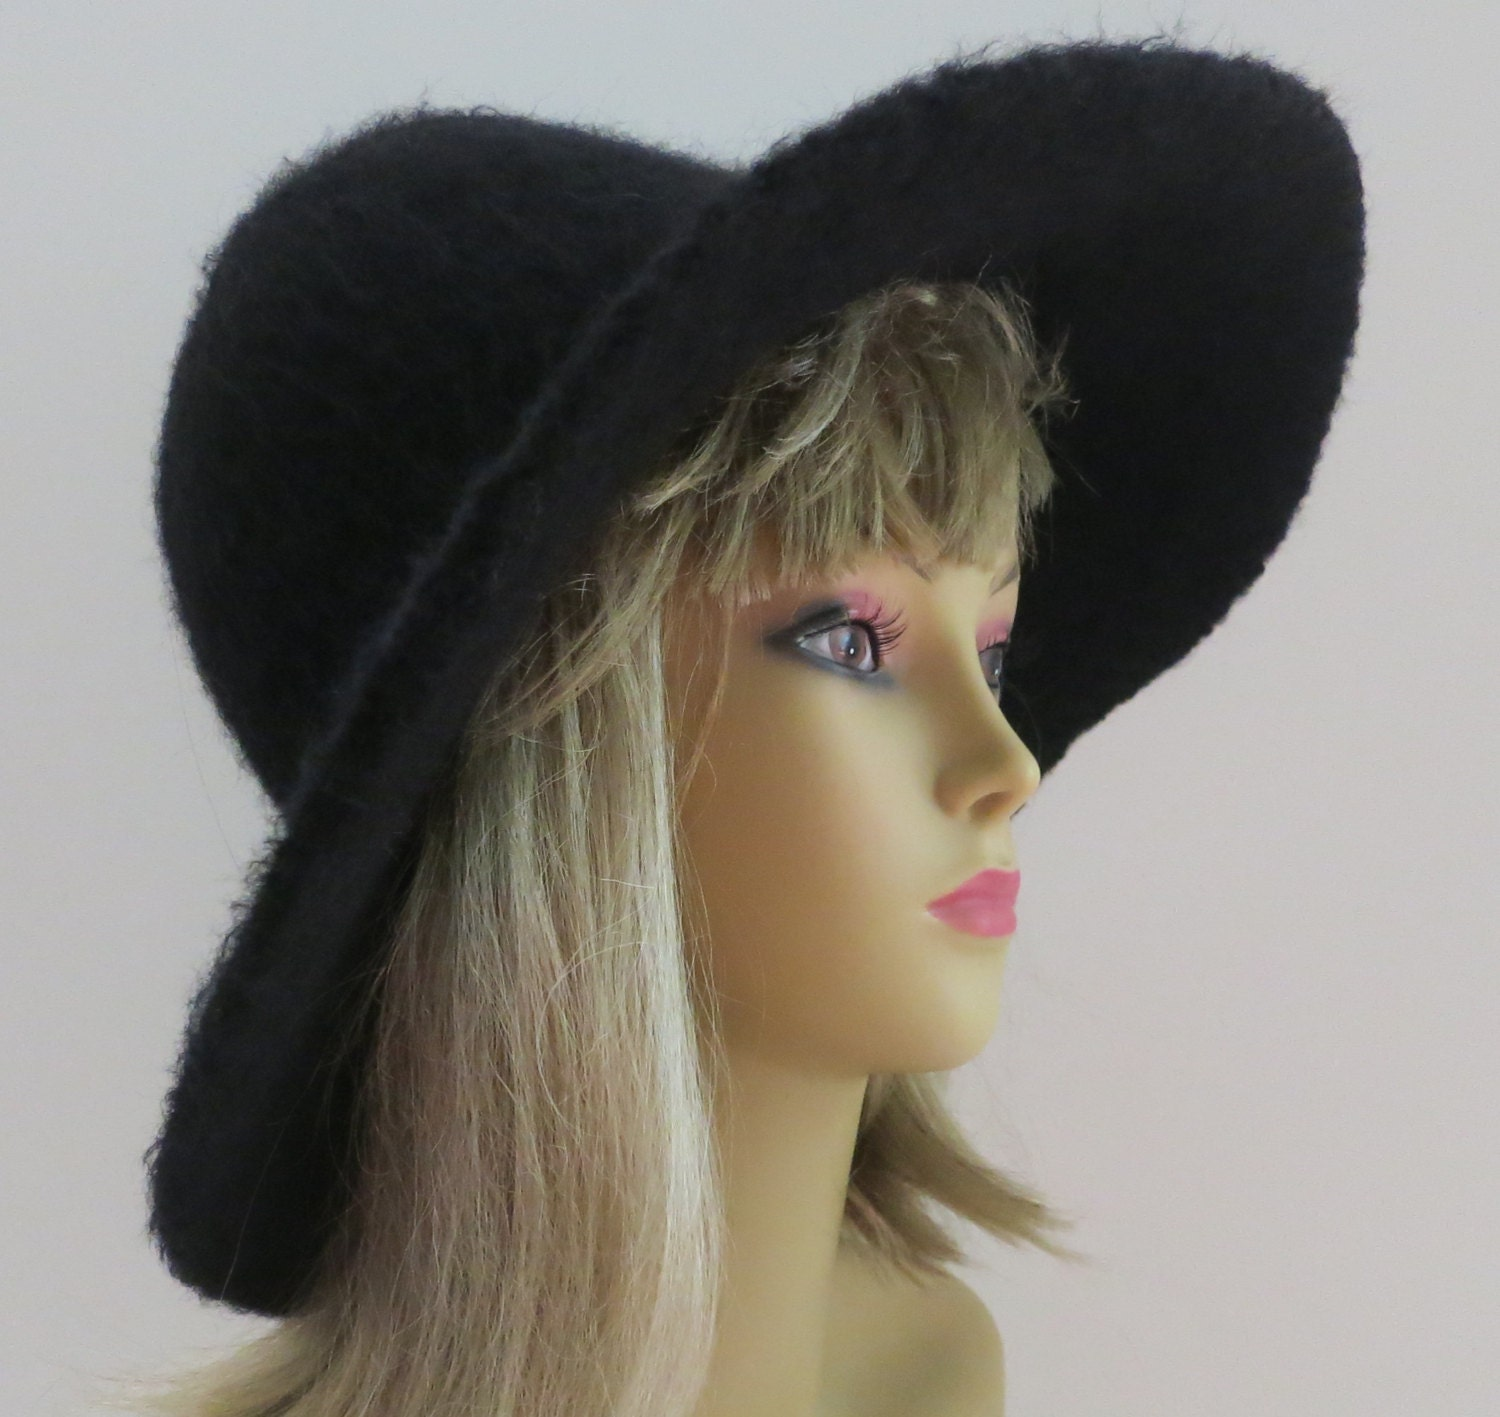 Felted Knit Hat Pattern Gallery - handicraft ideas home decorating